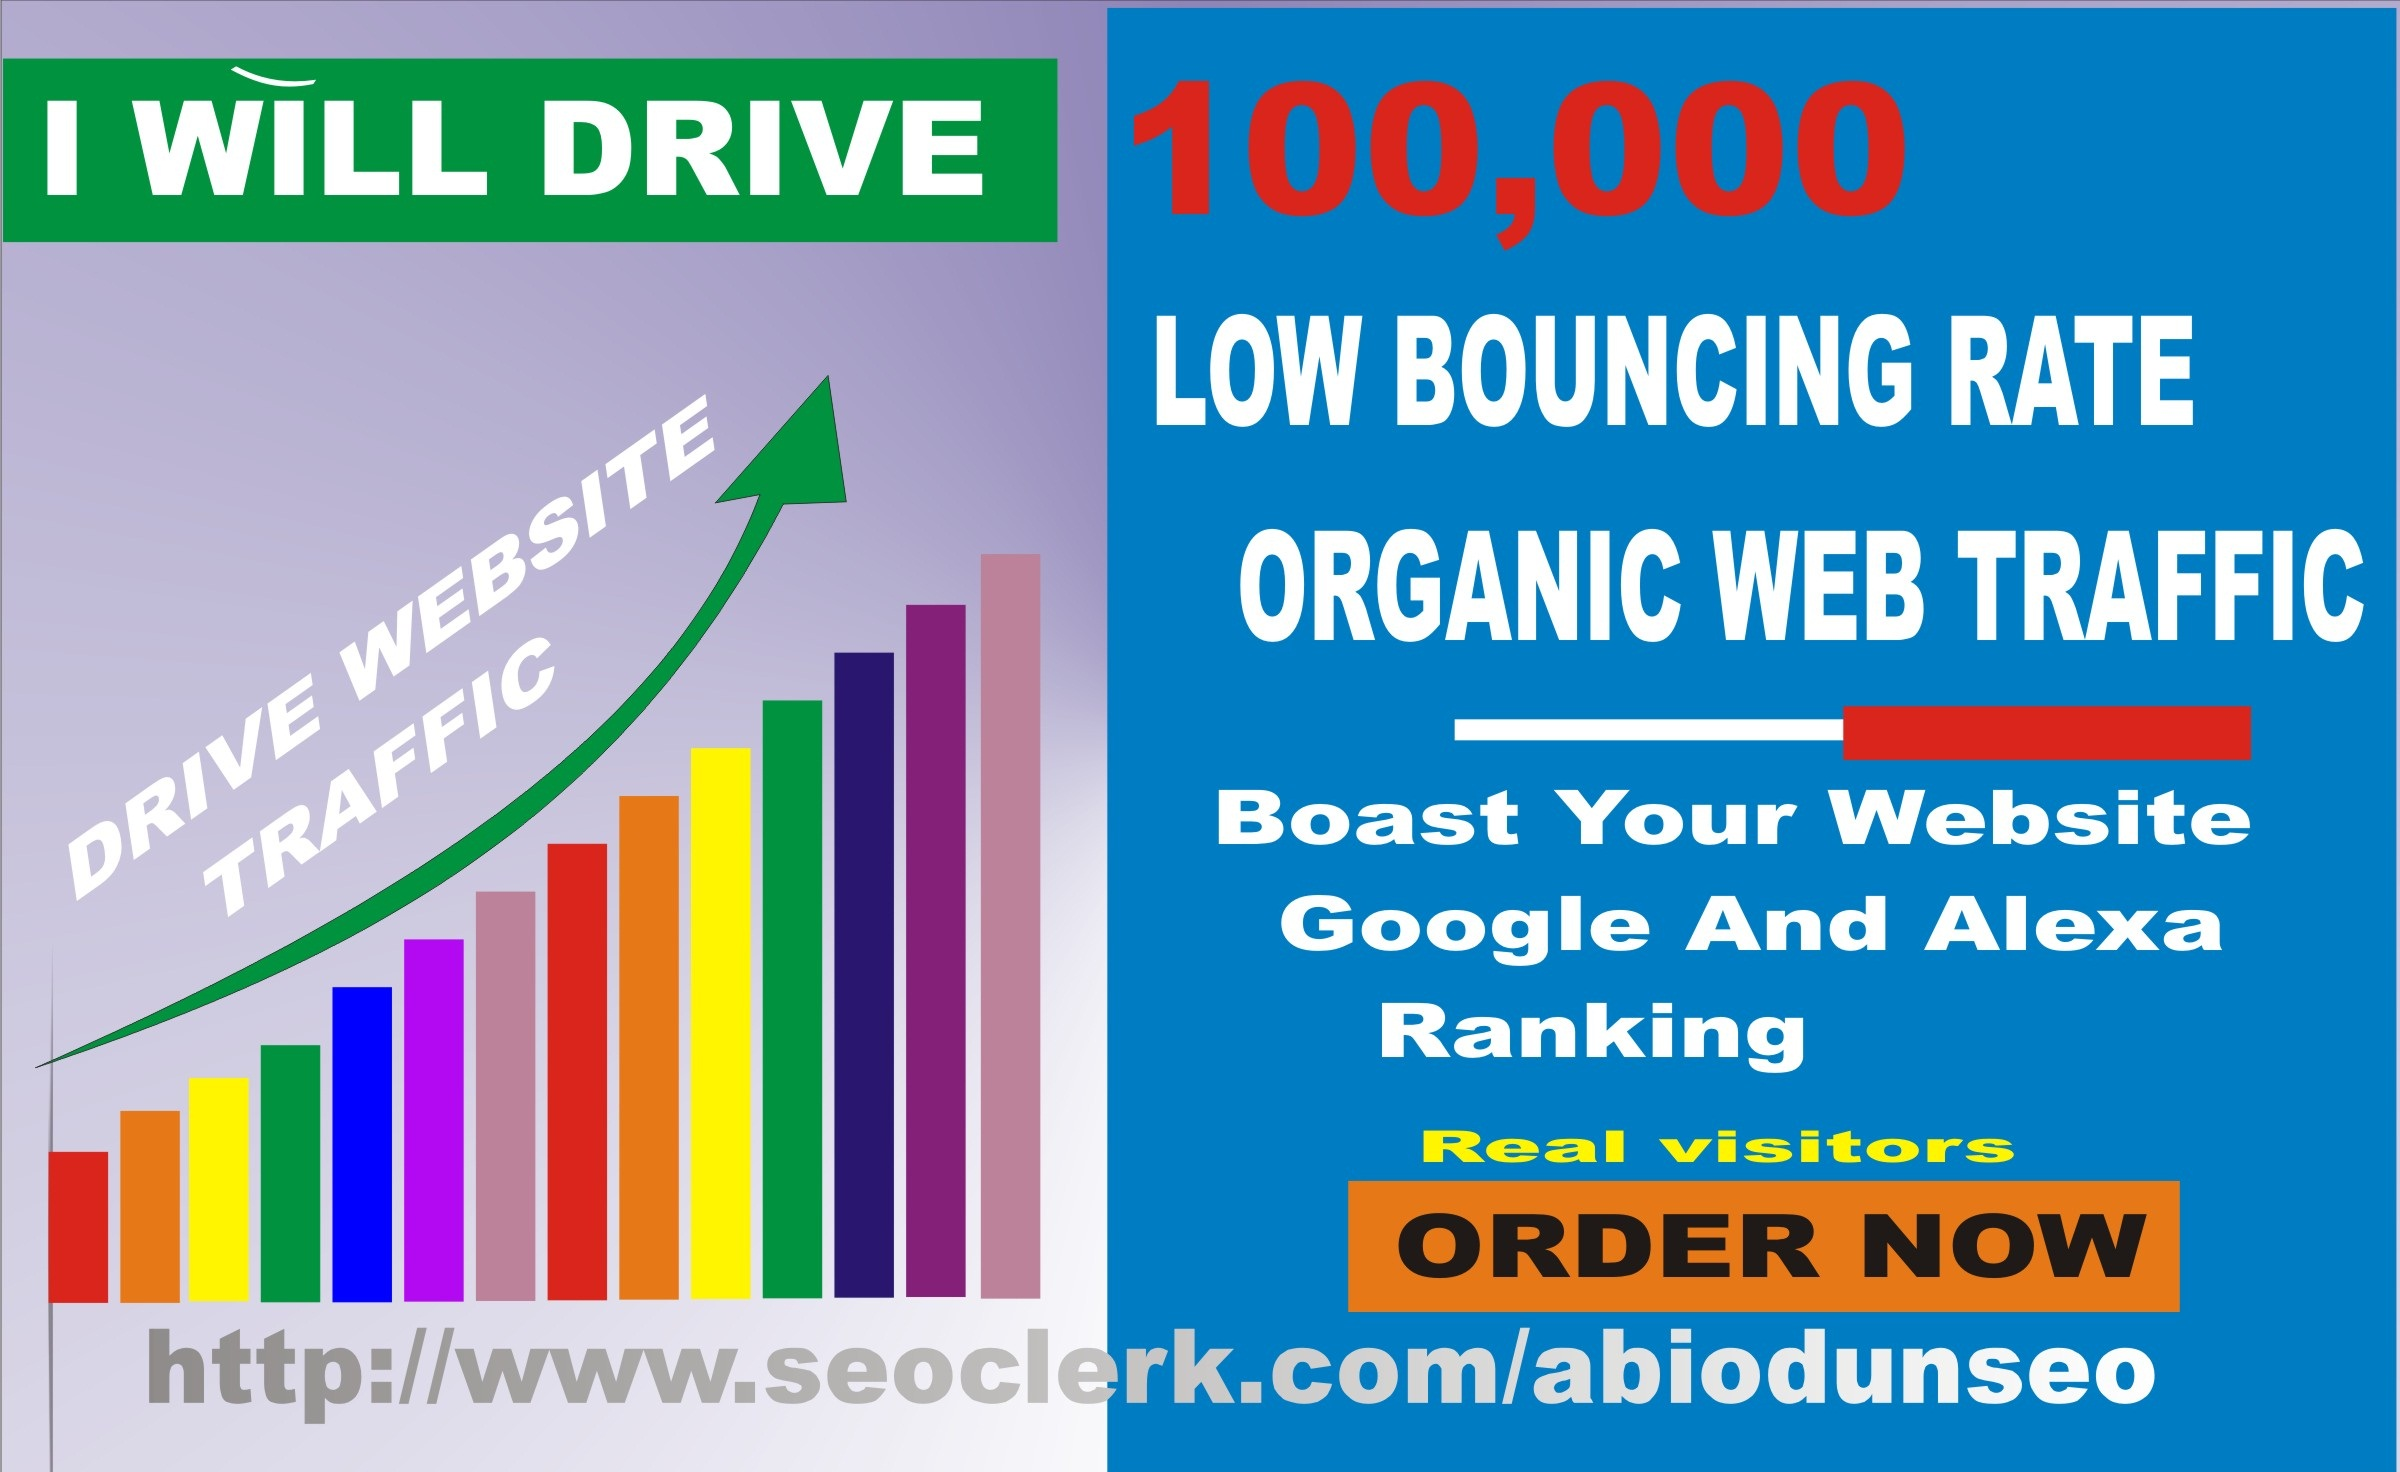 Get 50,000 keywords targeted web traffic to your website/blog